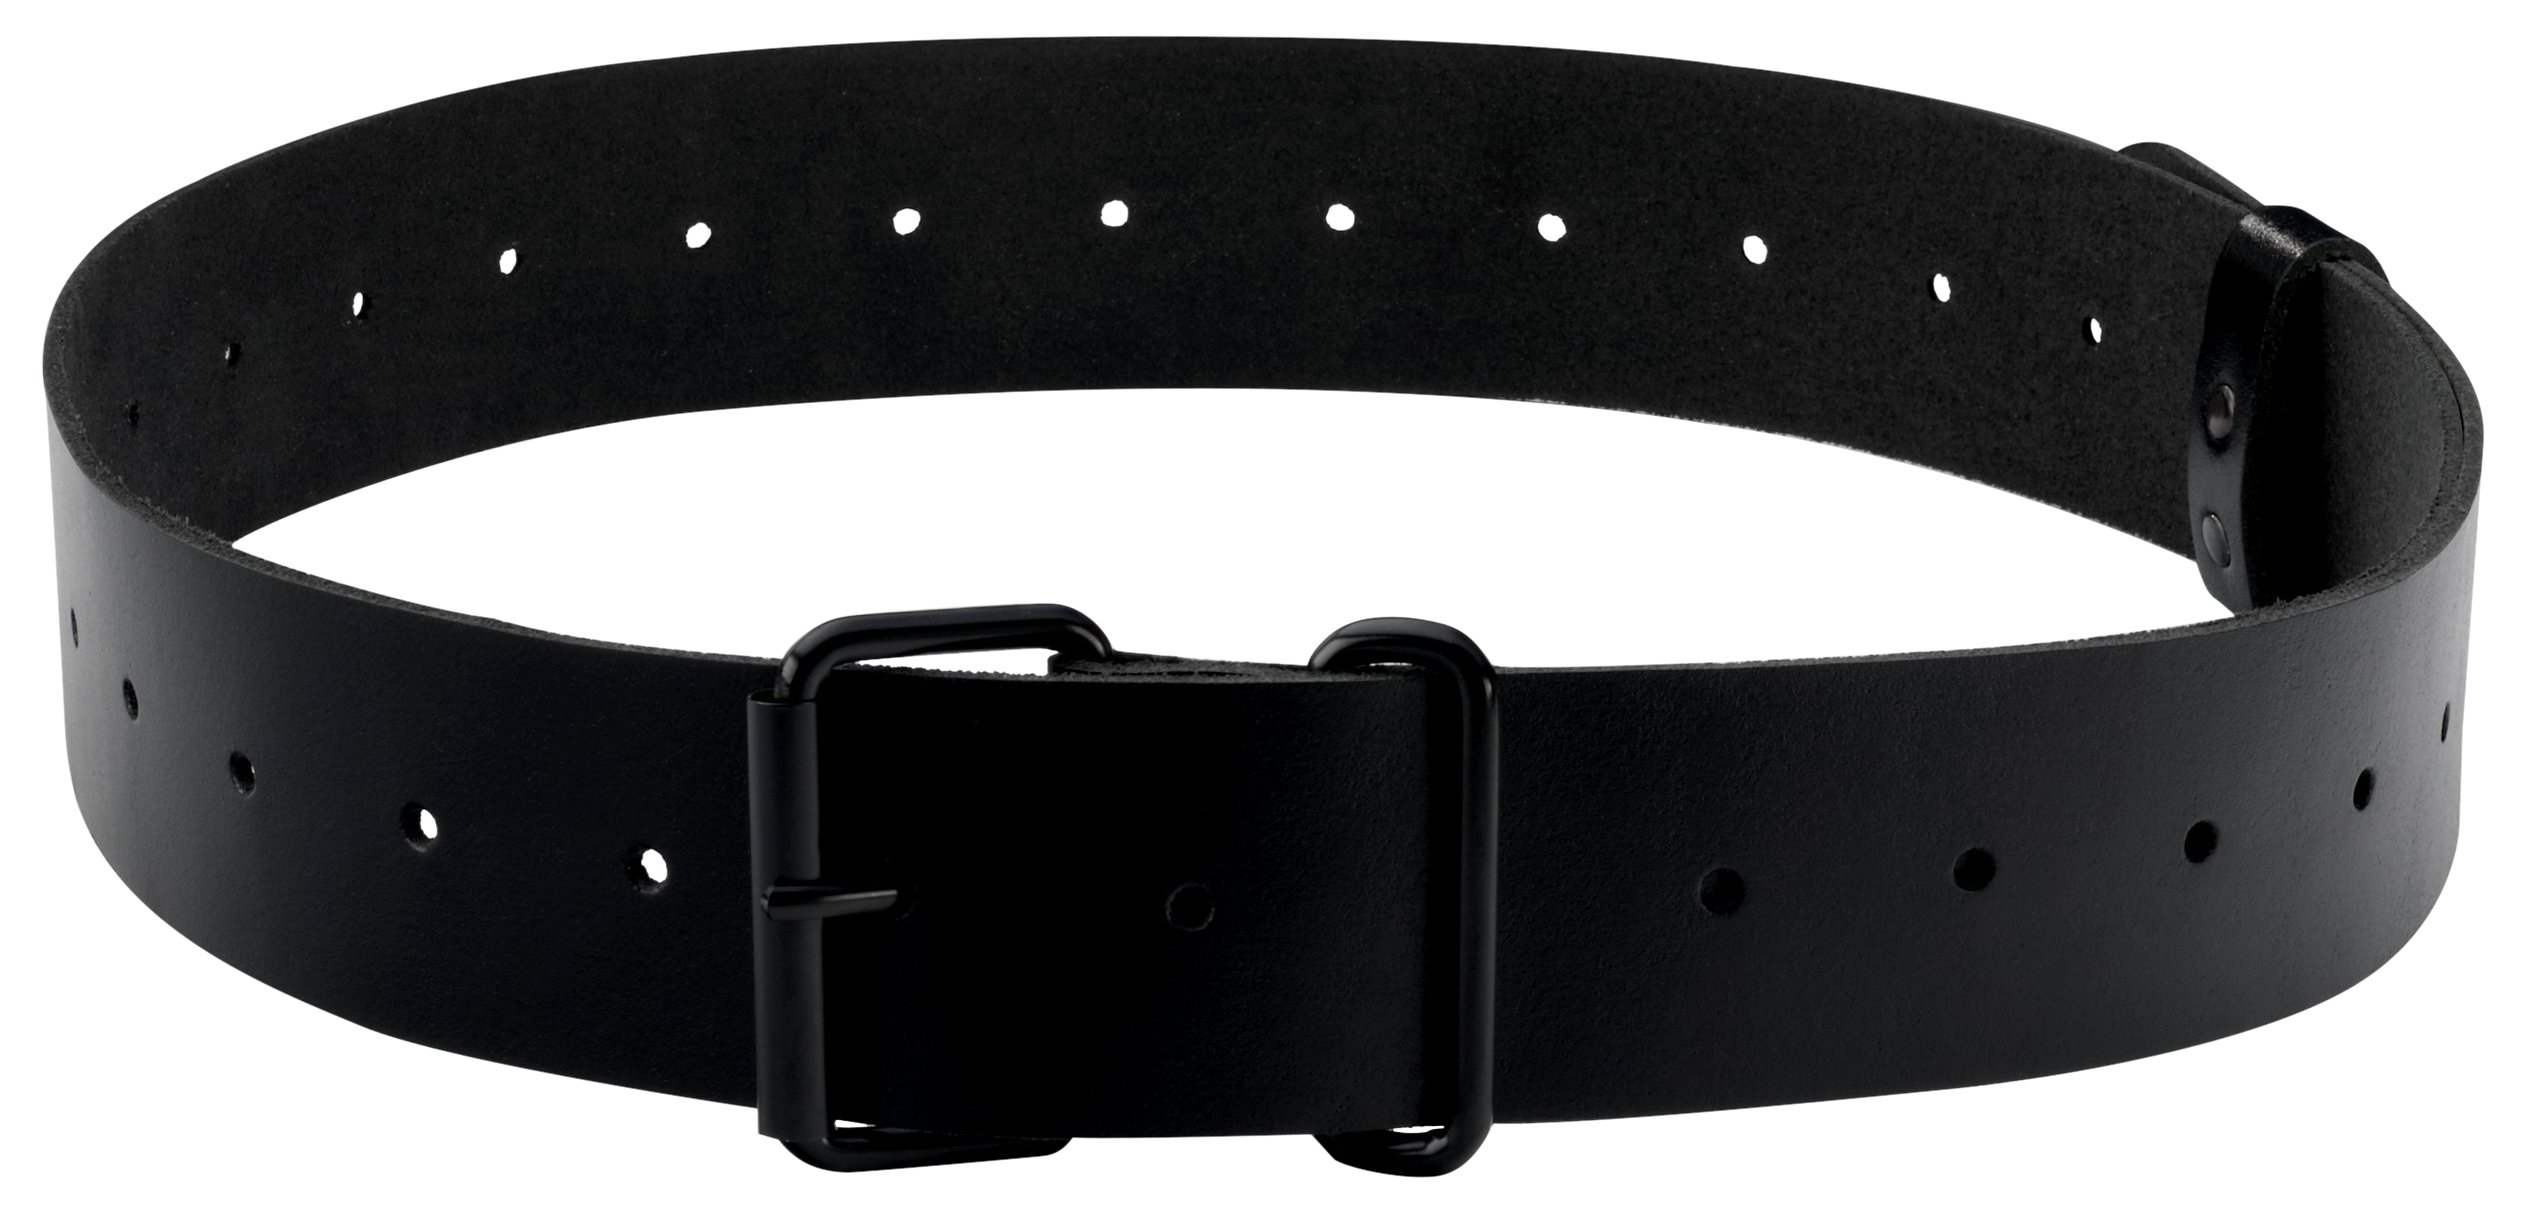 3M Versaflo 17360 High Durability Belt TR-326, for Versaflo TR-300 and Speed Glass TR-300-SG PAPR 1/case, Black by 3M